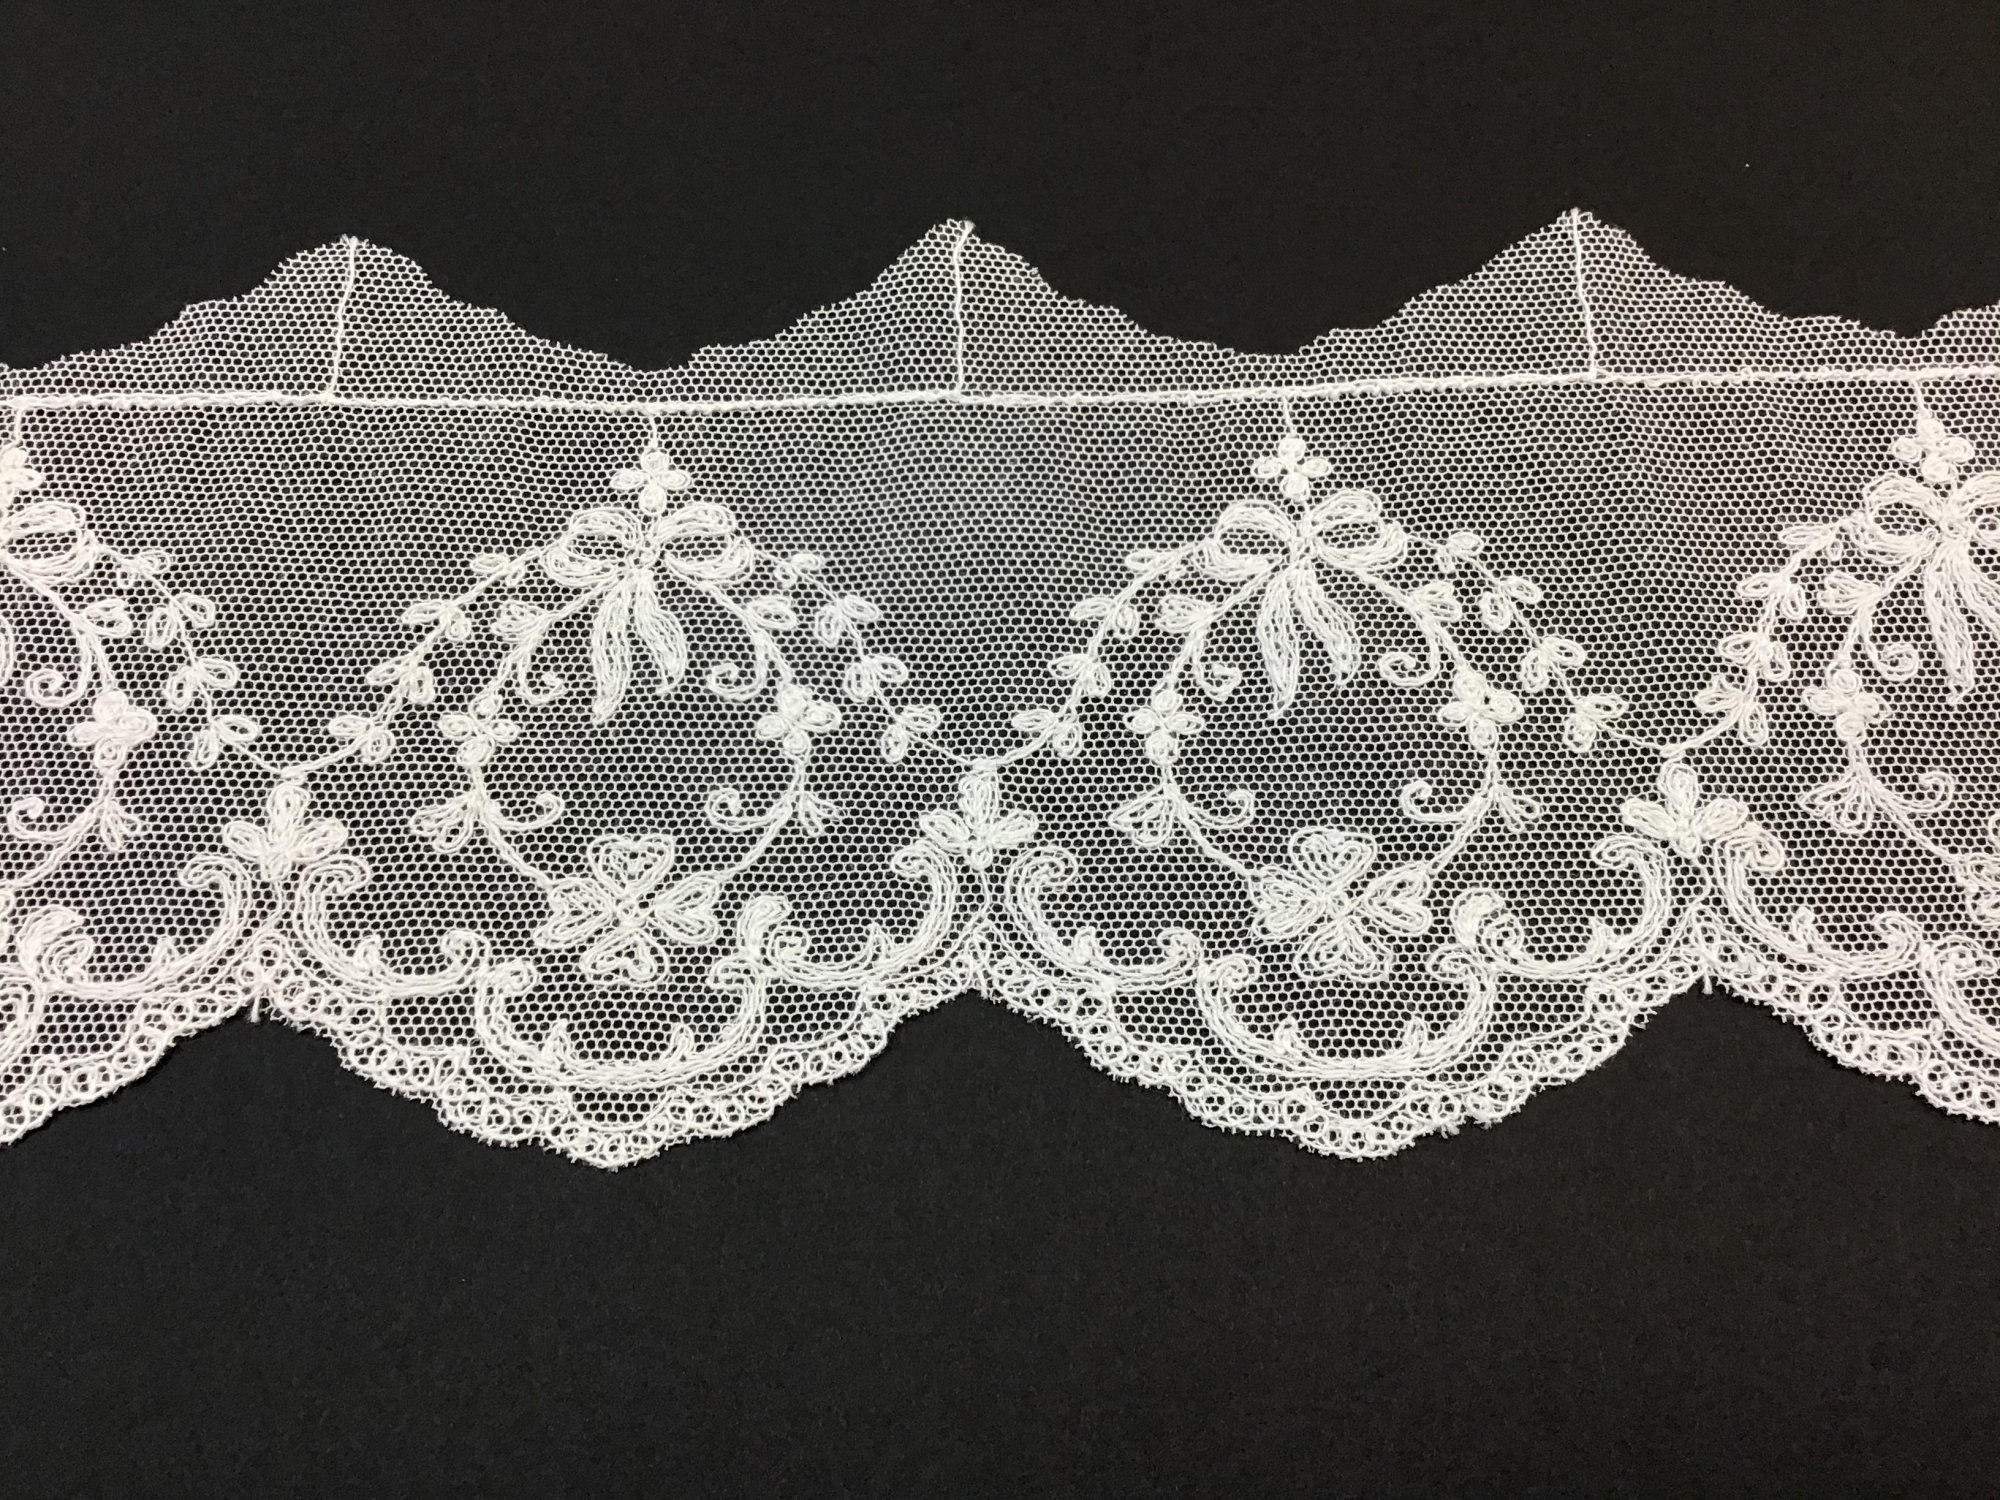 English Netting Lace Edging 3 7/8 Inches Soft White 5141-D